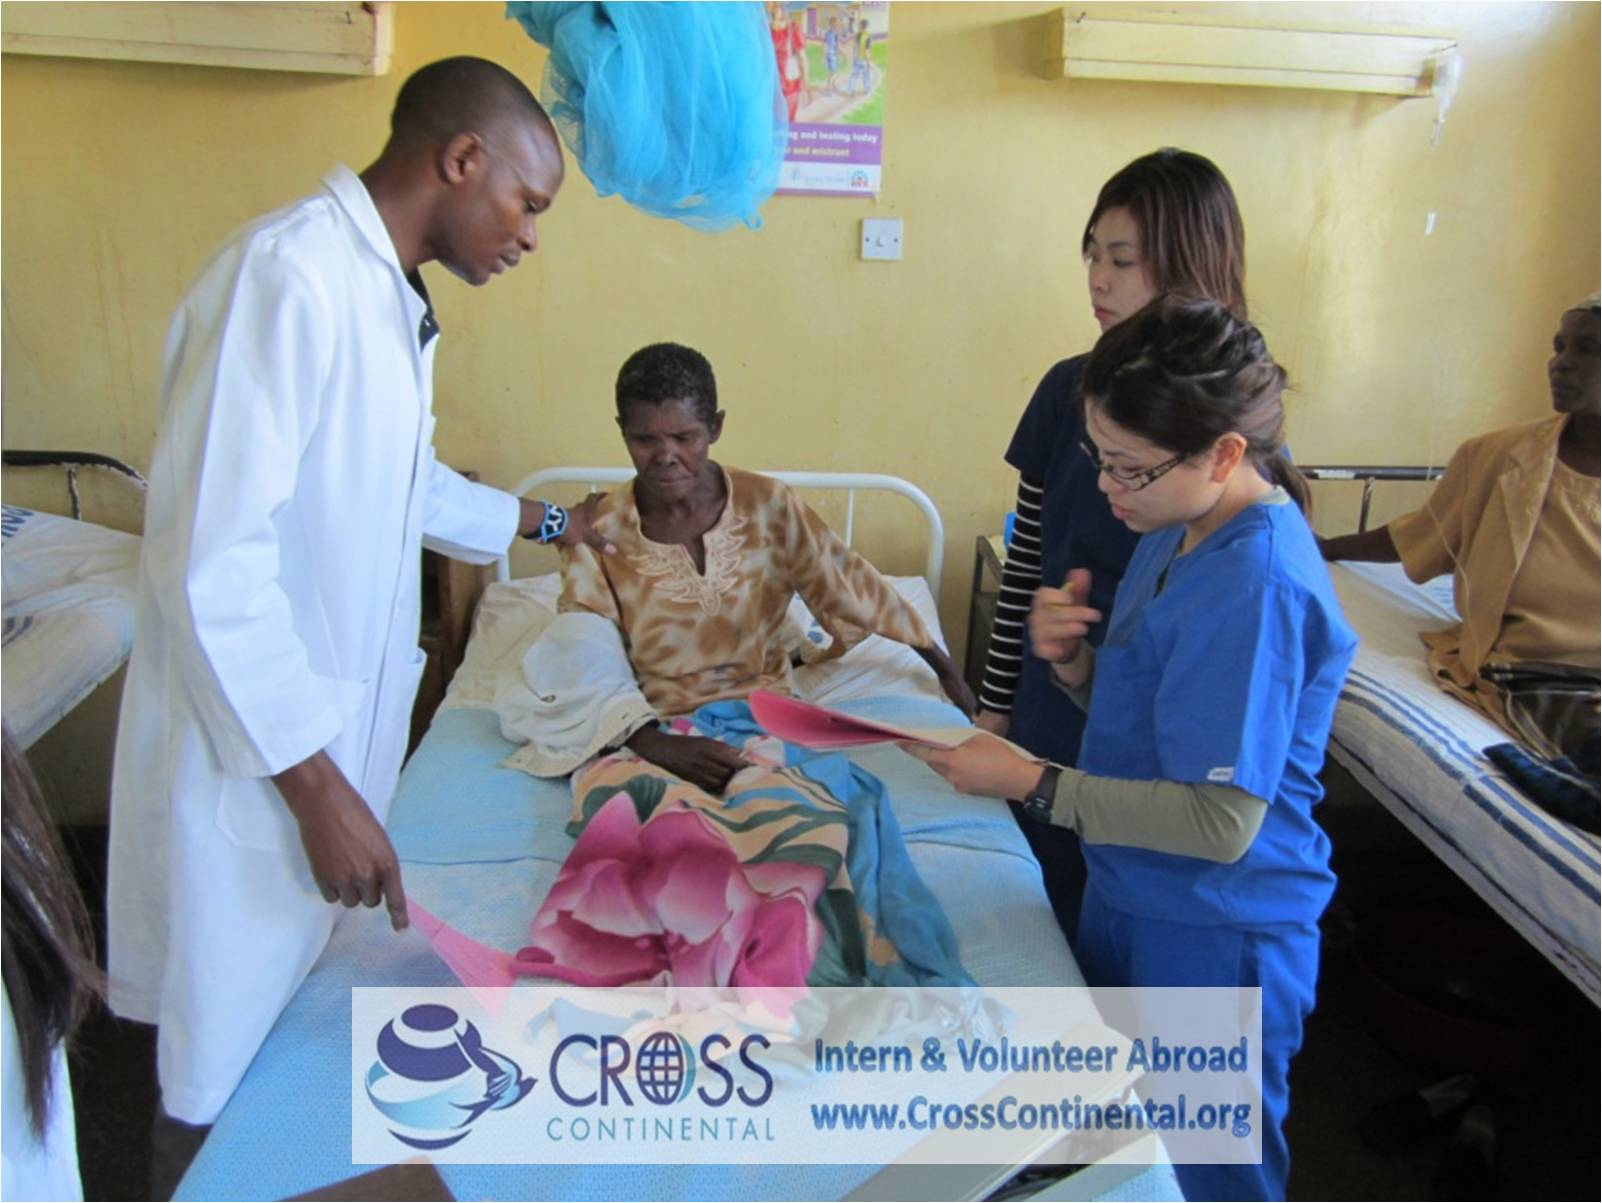 Medical Internships Abroad A Stepping Stone To Medical School